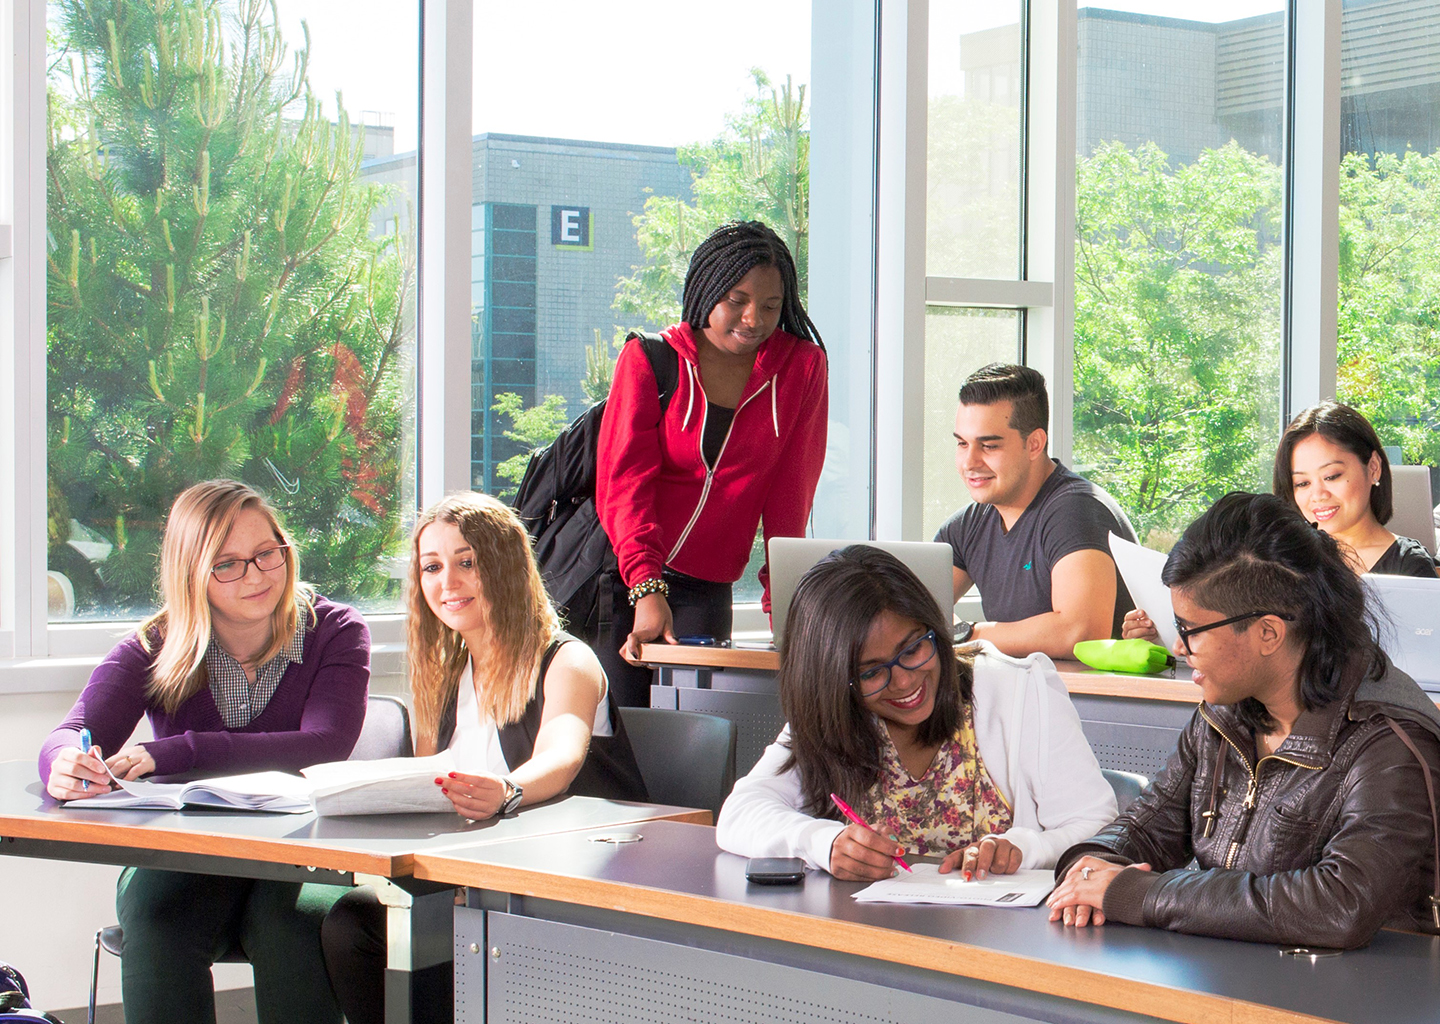 201 Courses Available At Centennial College Of Applied Arts And Technology In Canada Apply Now For 2020 Intake Idp India